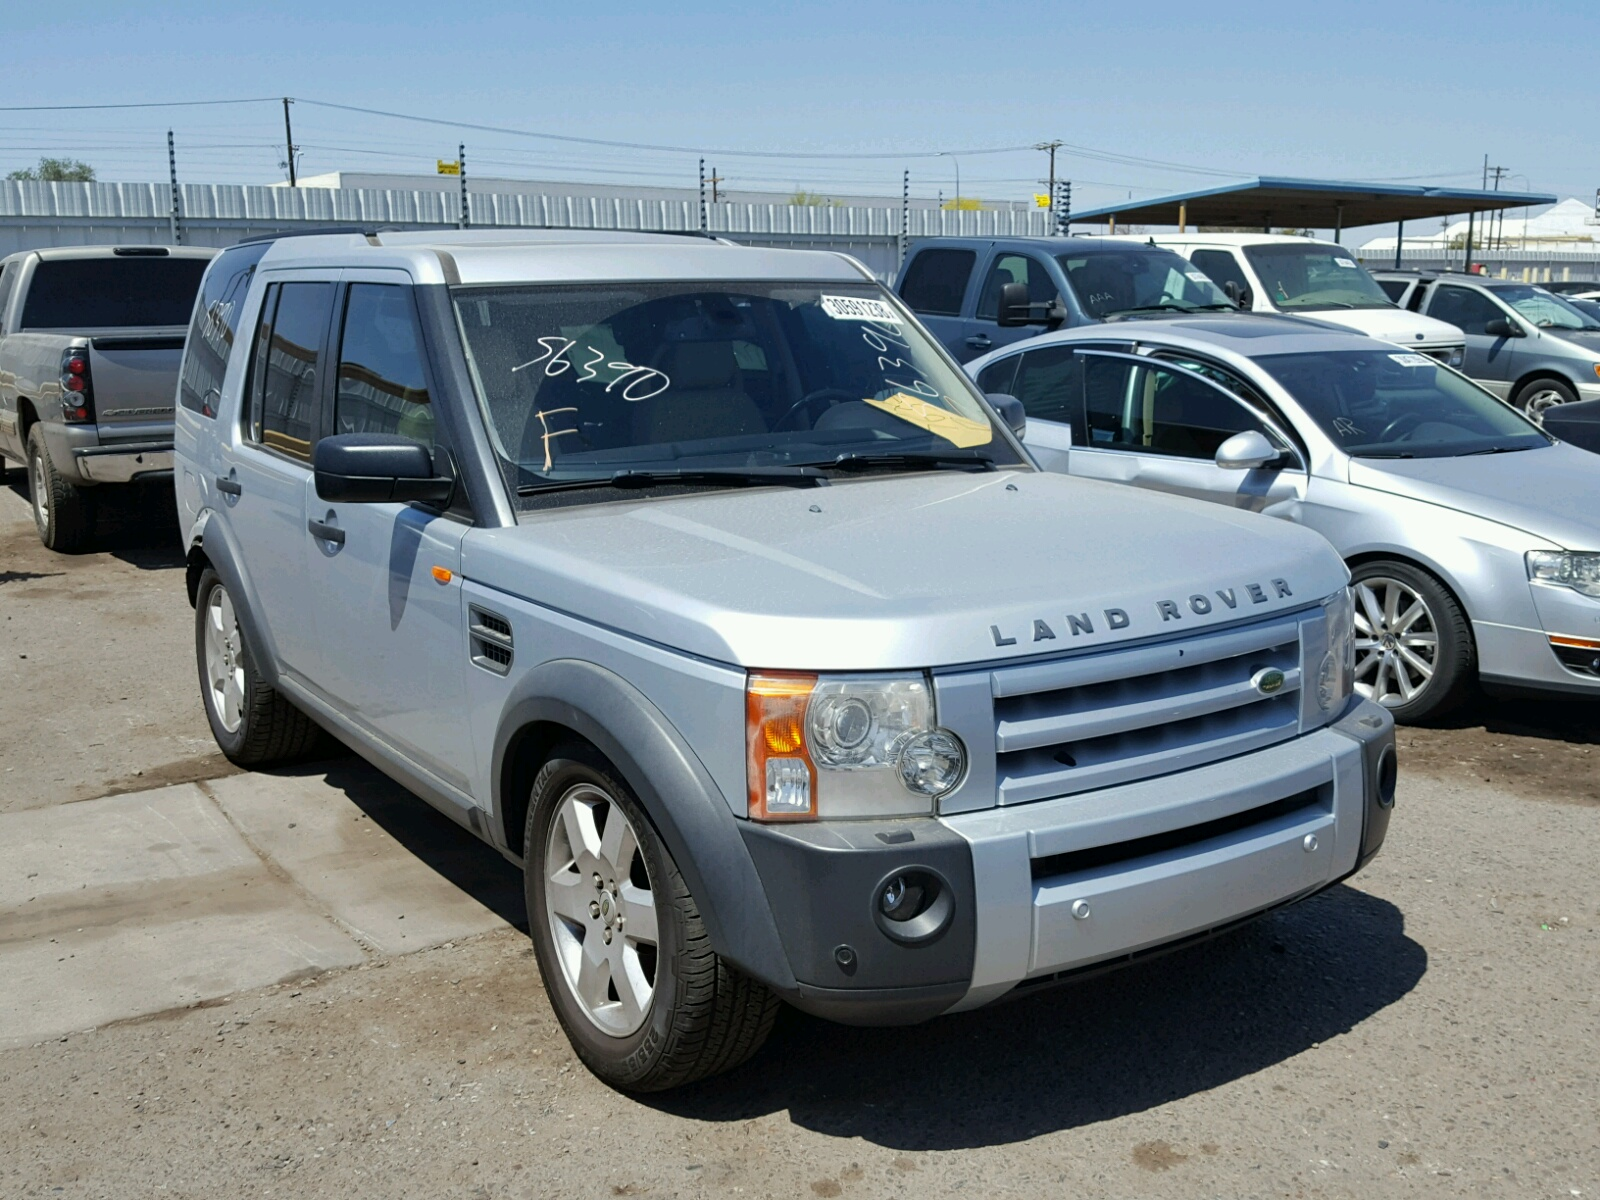 auto view lot for right north auctions rover en silver ma landrover online sale land copart of on in carfinder hse boston certificate title